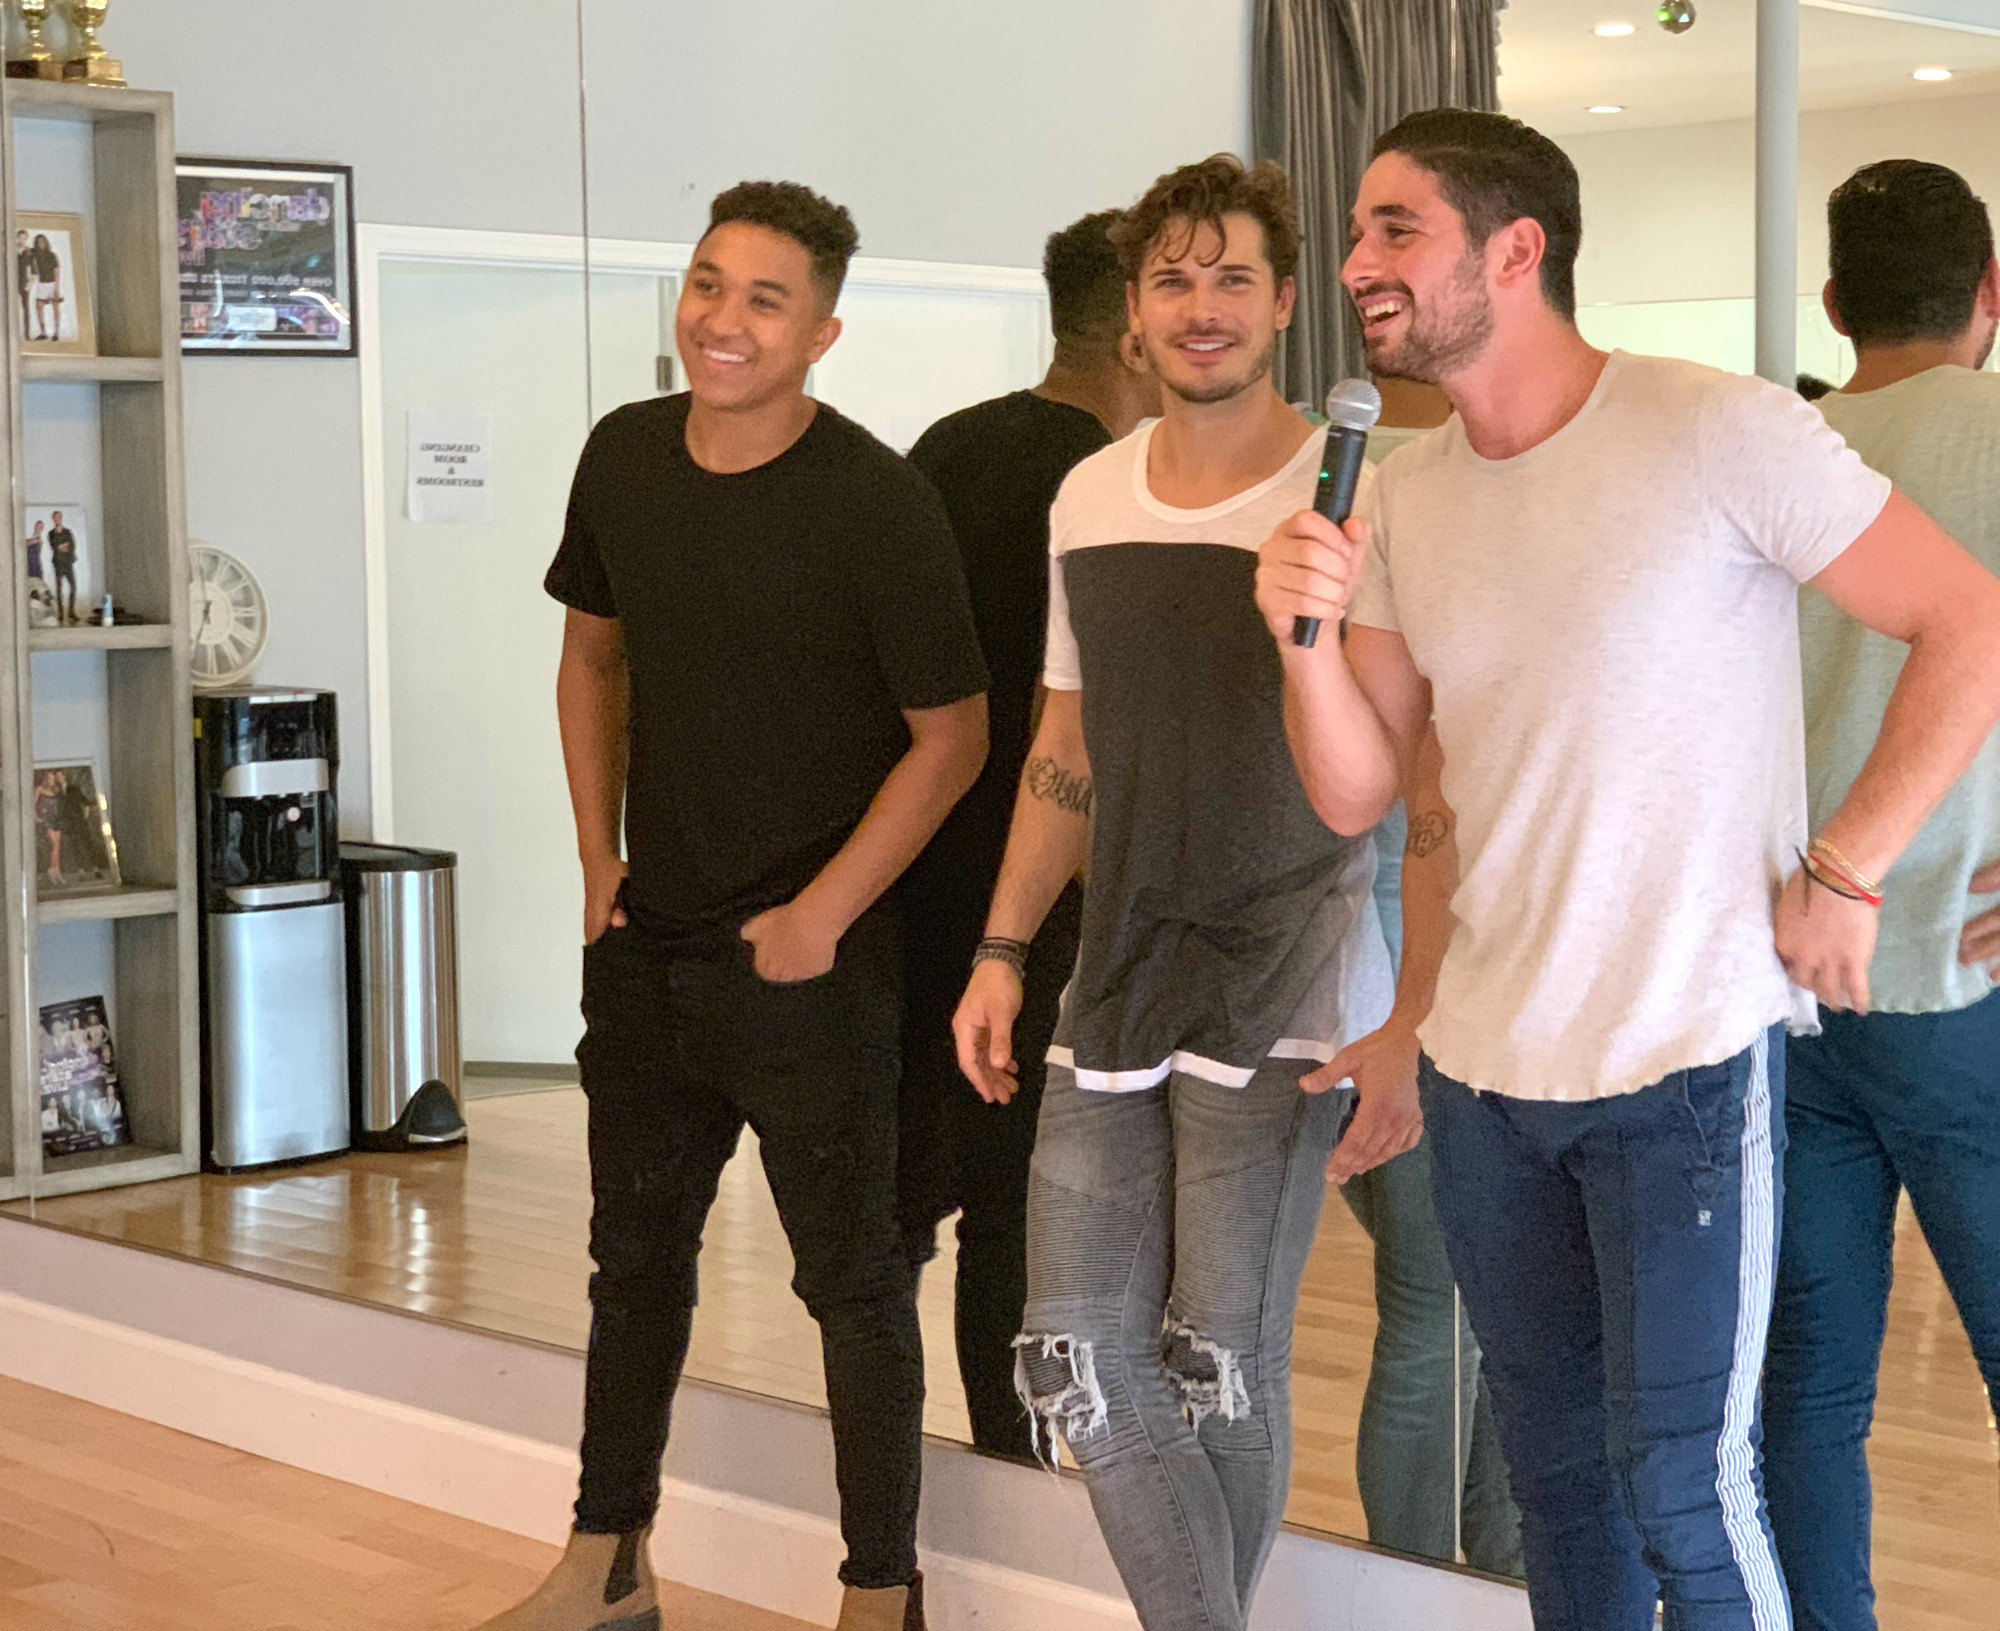 interview with DWTS Pros and DWTS Juniors mentors